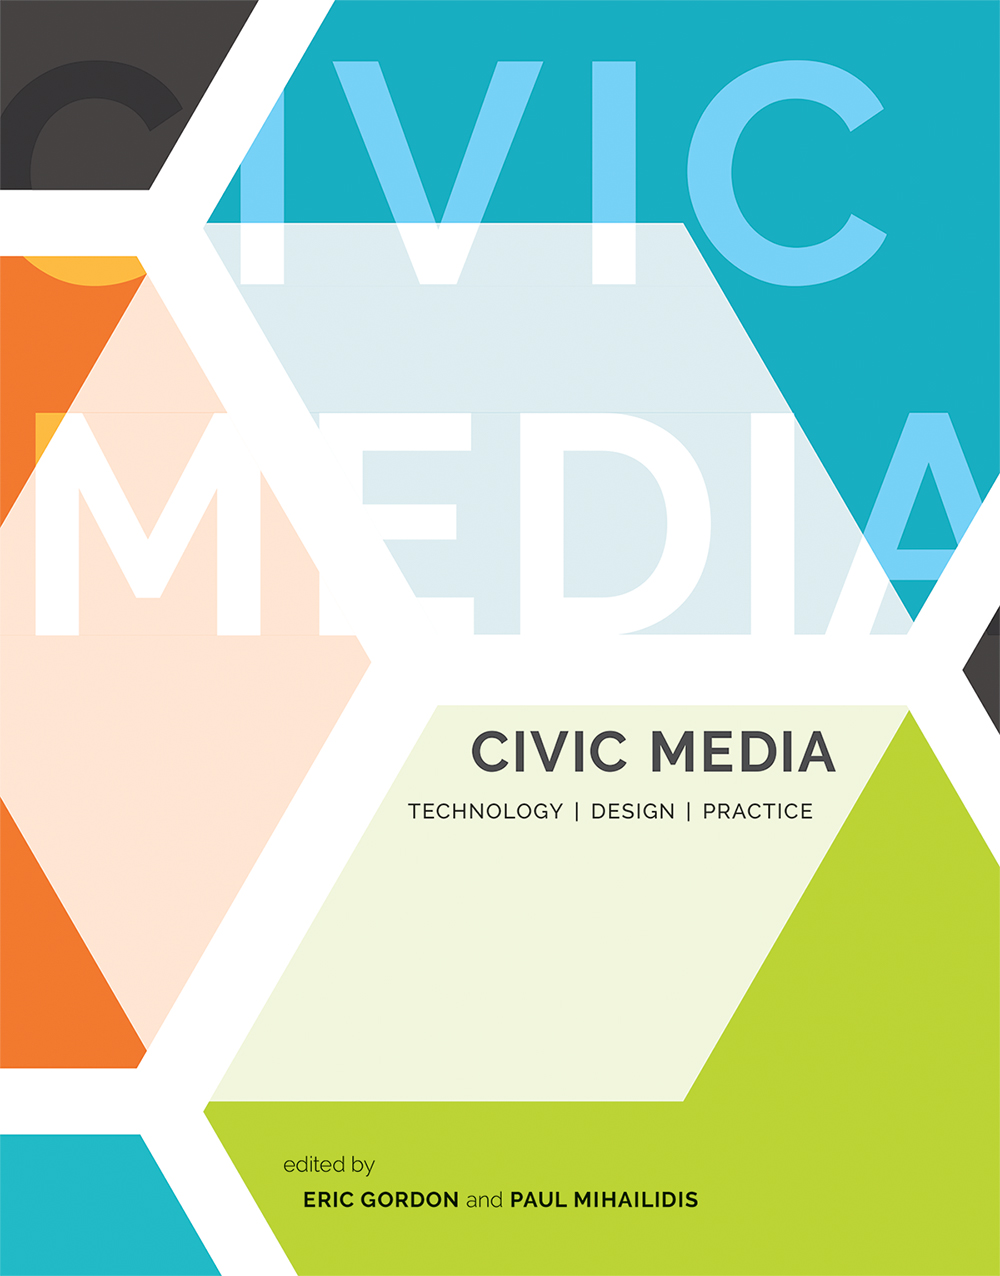 Civic Media Text Cover Image.jpg